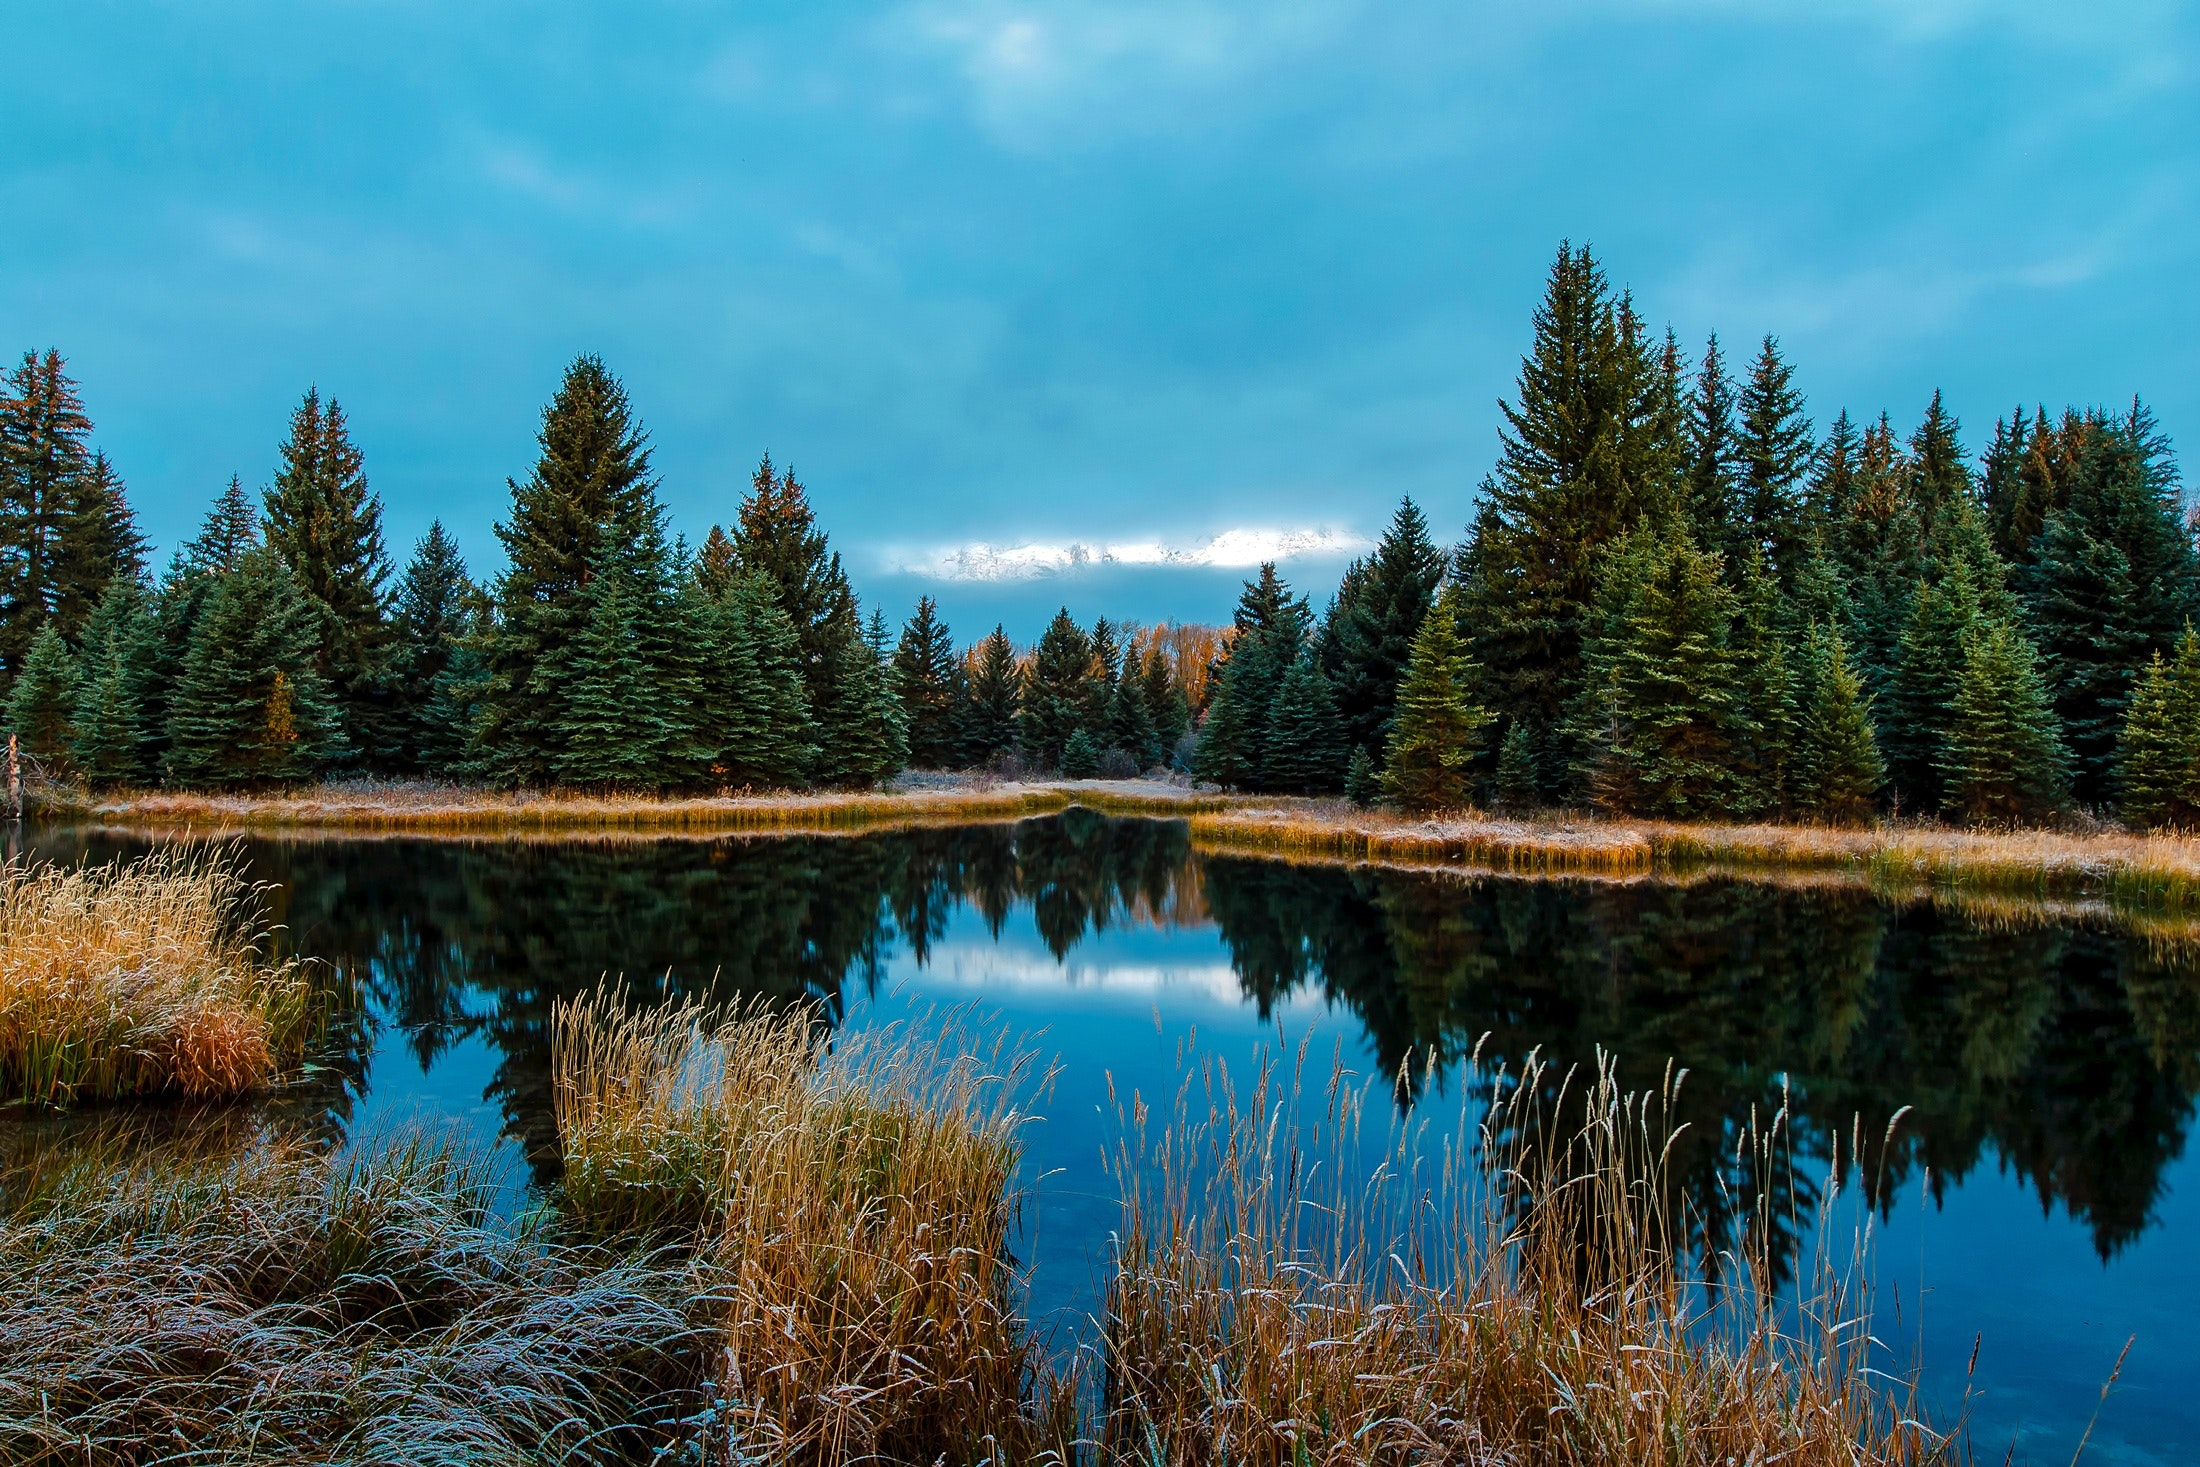 Panoramic View of Lake in Forest, Blue sky, Pond, Wilderness, Water, HQ Photo